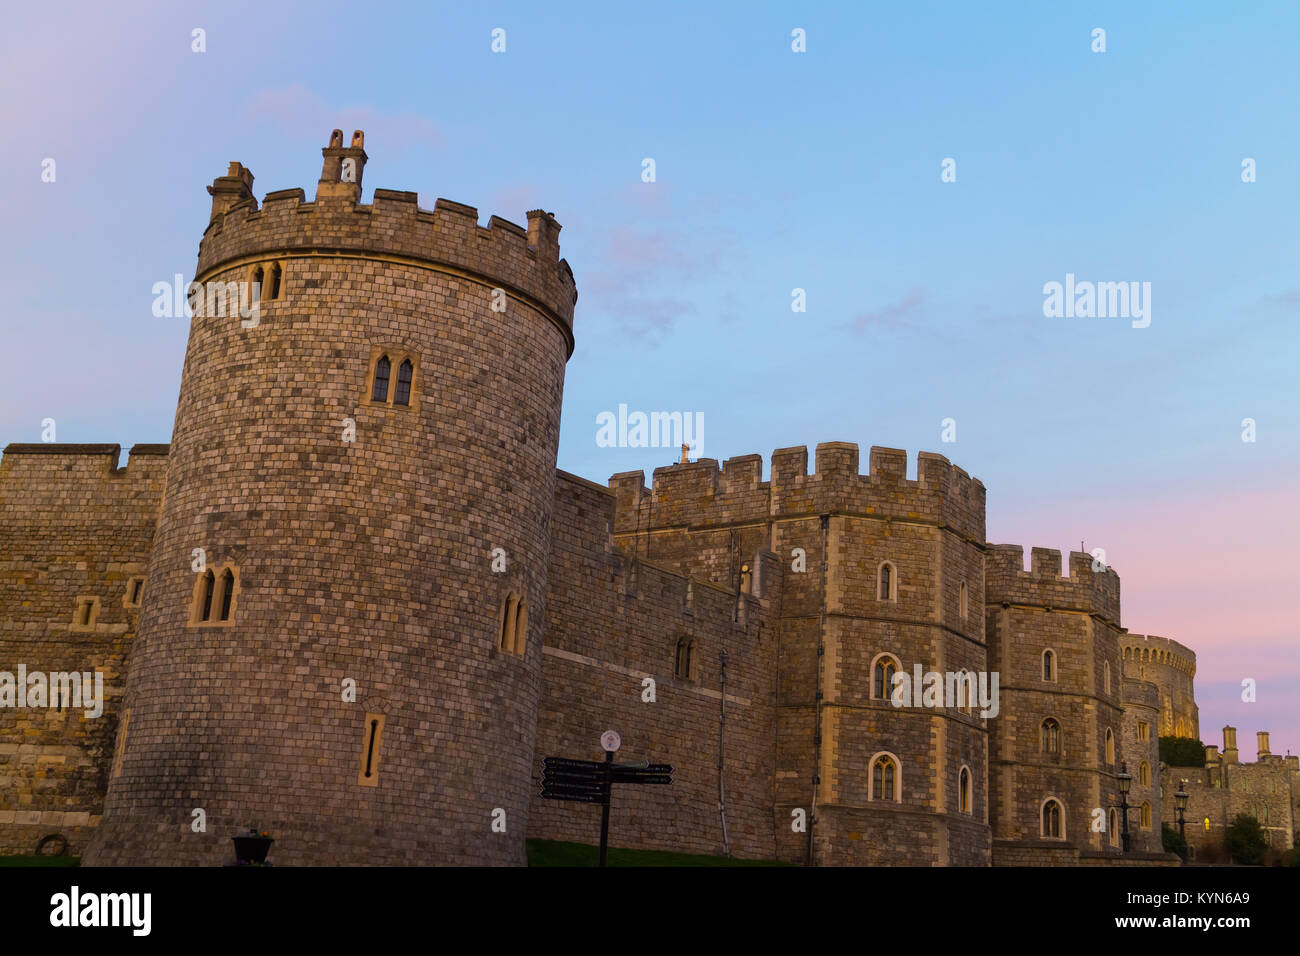 Windsor Castle - Stock Image